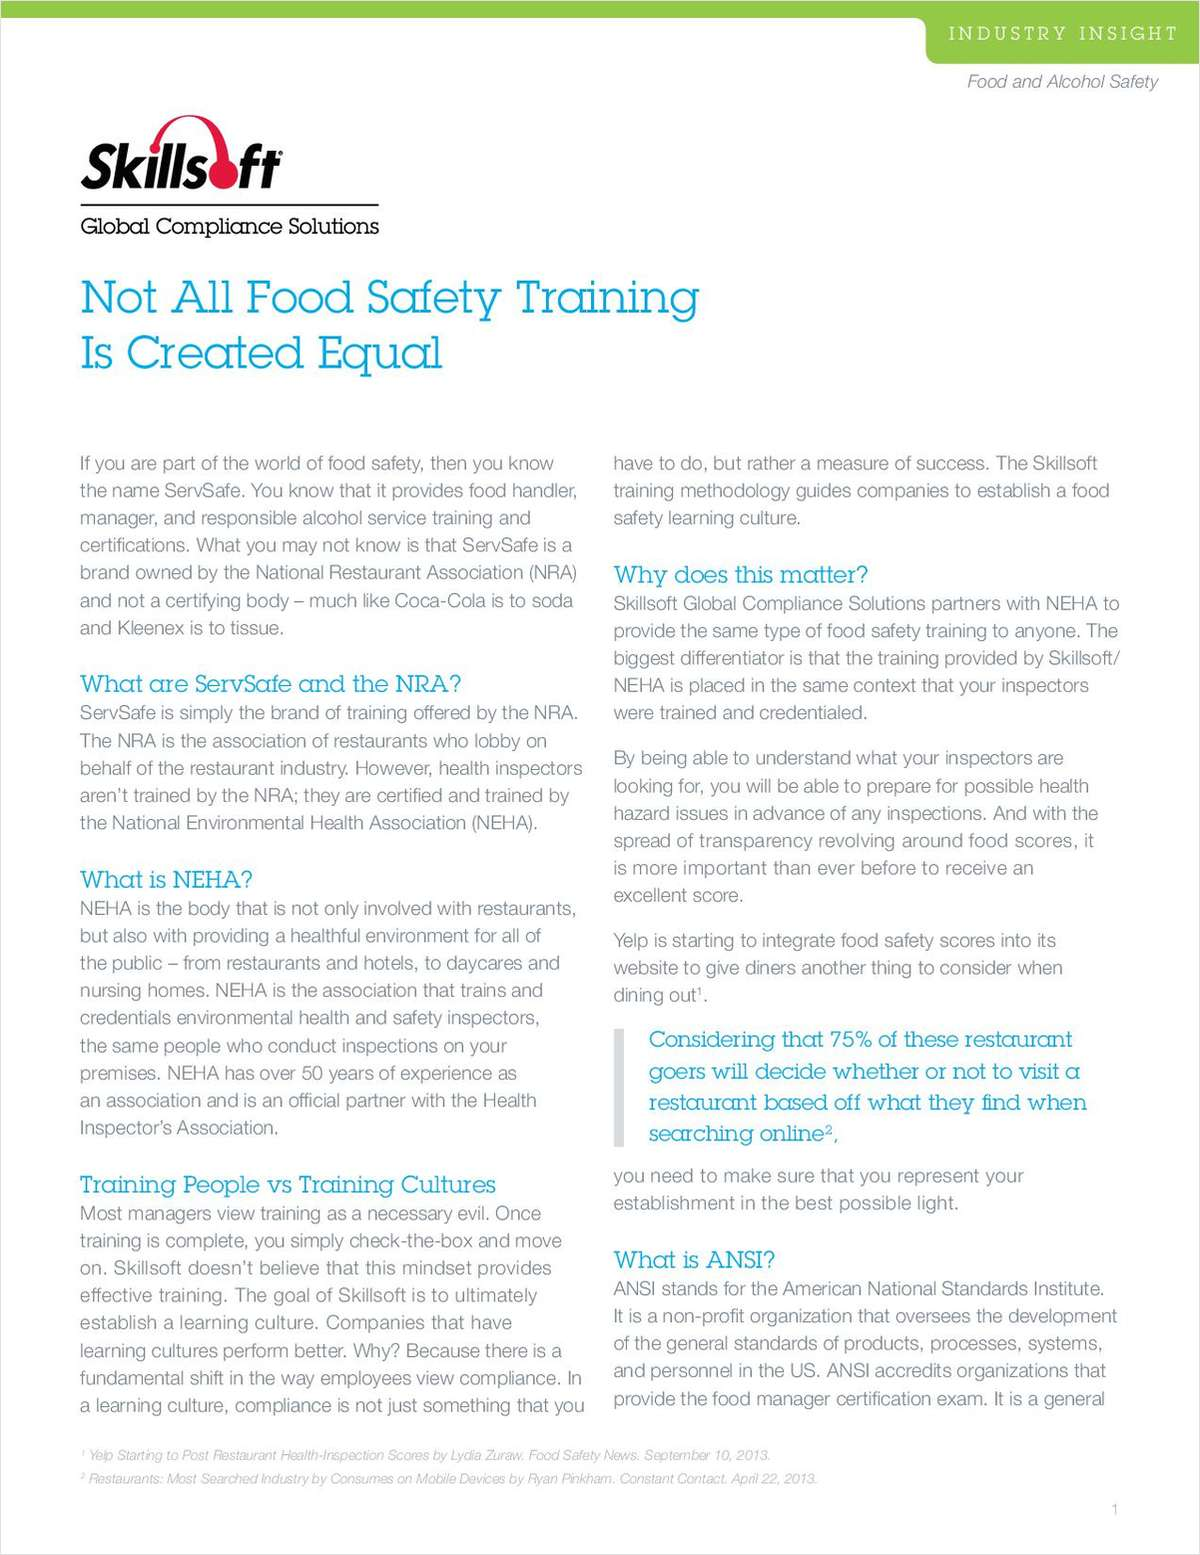 Not All Food Safety Training Is Created Equal